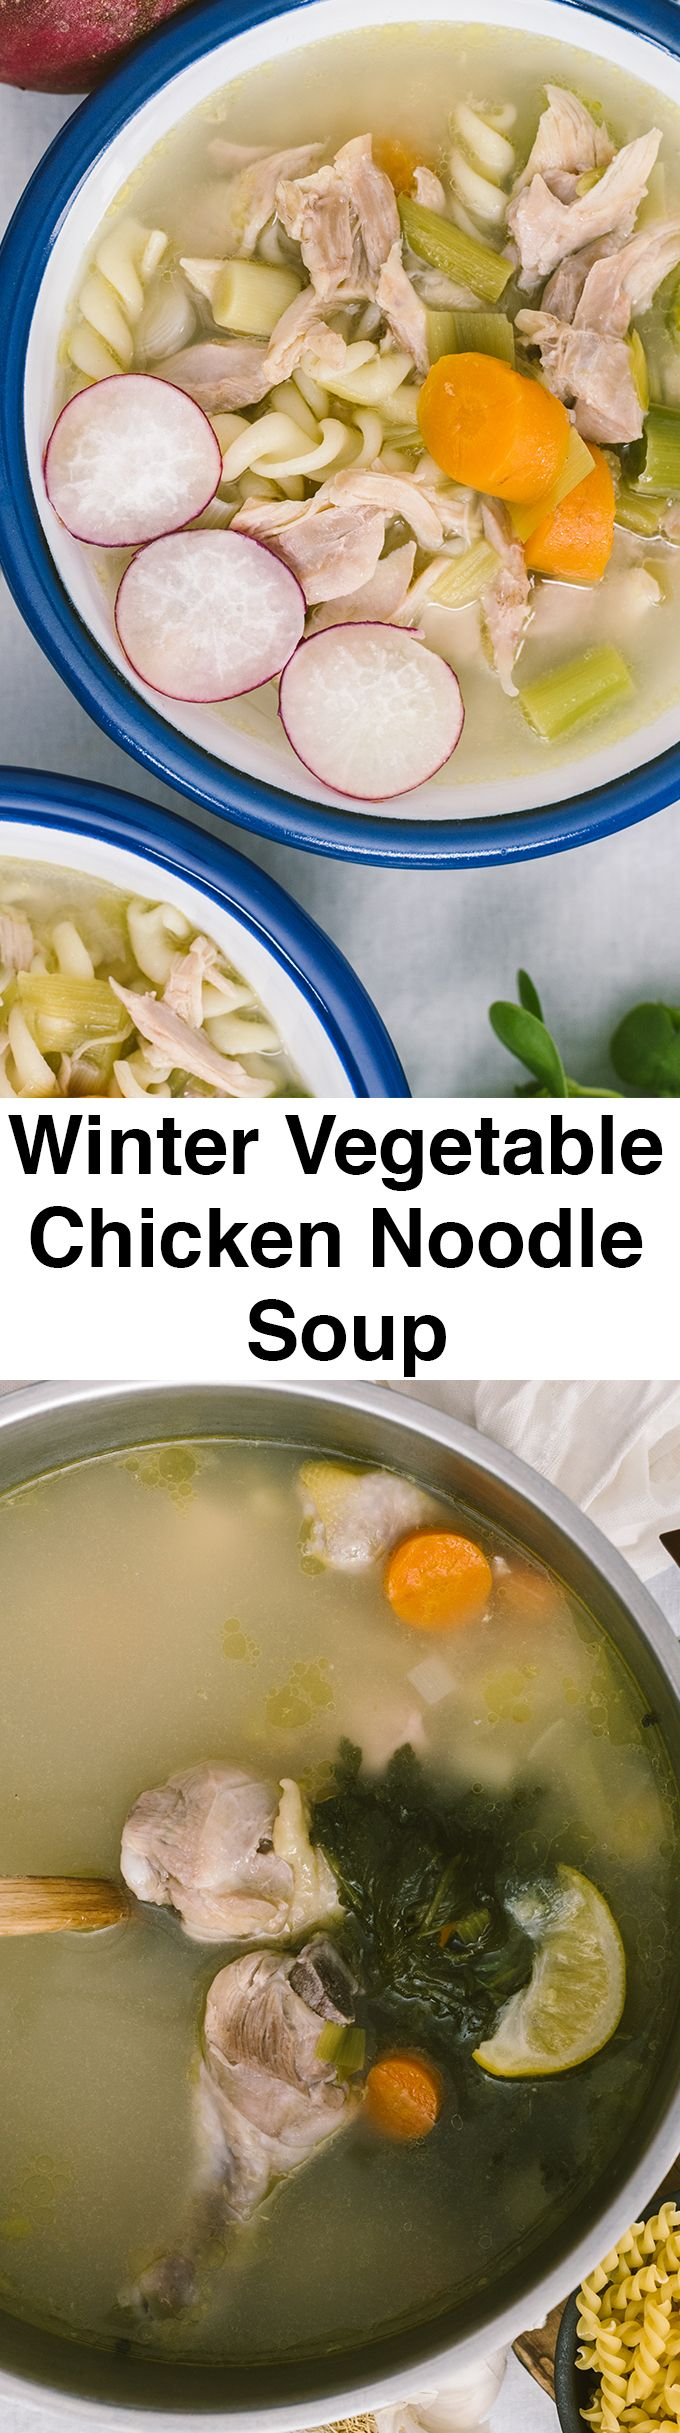 Winter Vegetable Chicken Noodle Soup is full of flavors. Packed with chicken, winter vegetables and noodles, this is a perfect recipe to get back to a healthy diet after all the heavy holiday food.